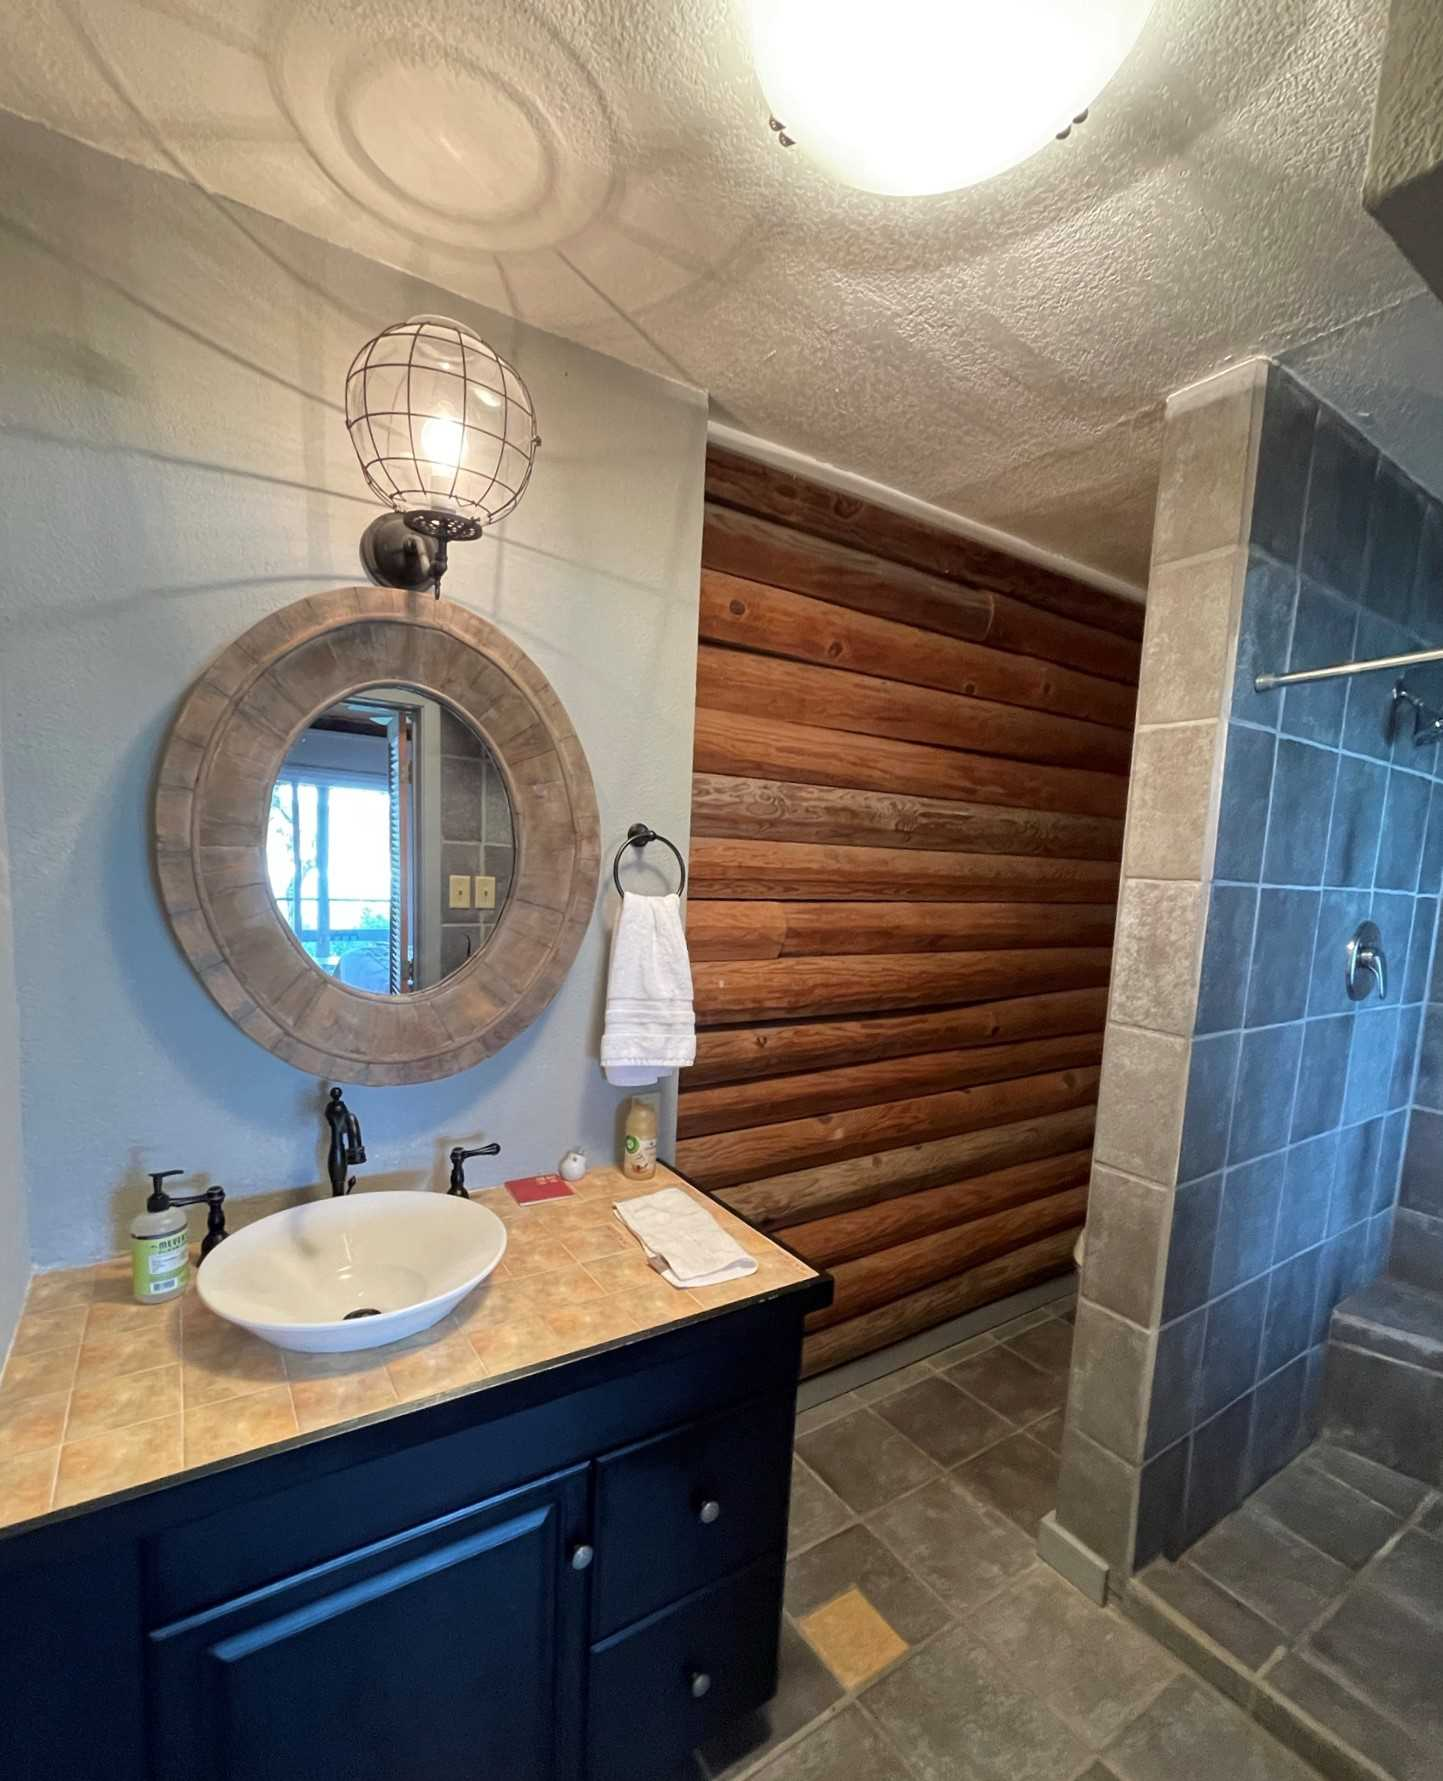 Fun and functional decor can be found throughout the Escape-even in the bathrooms!